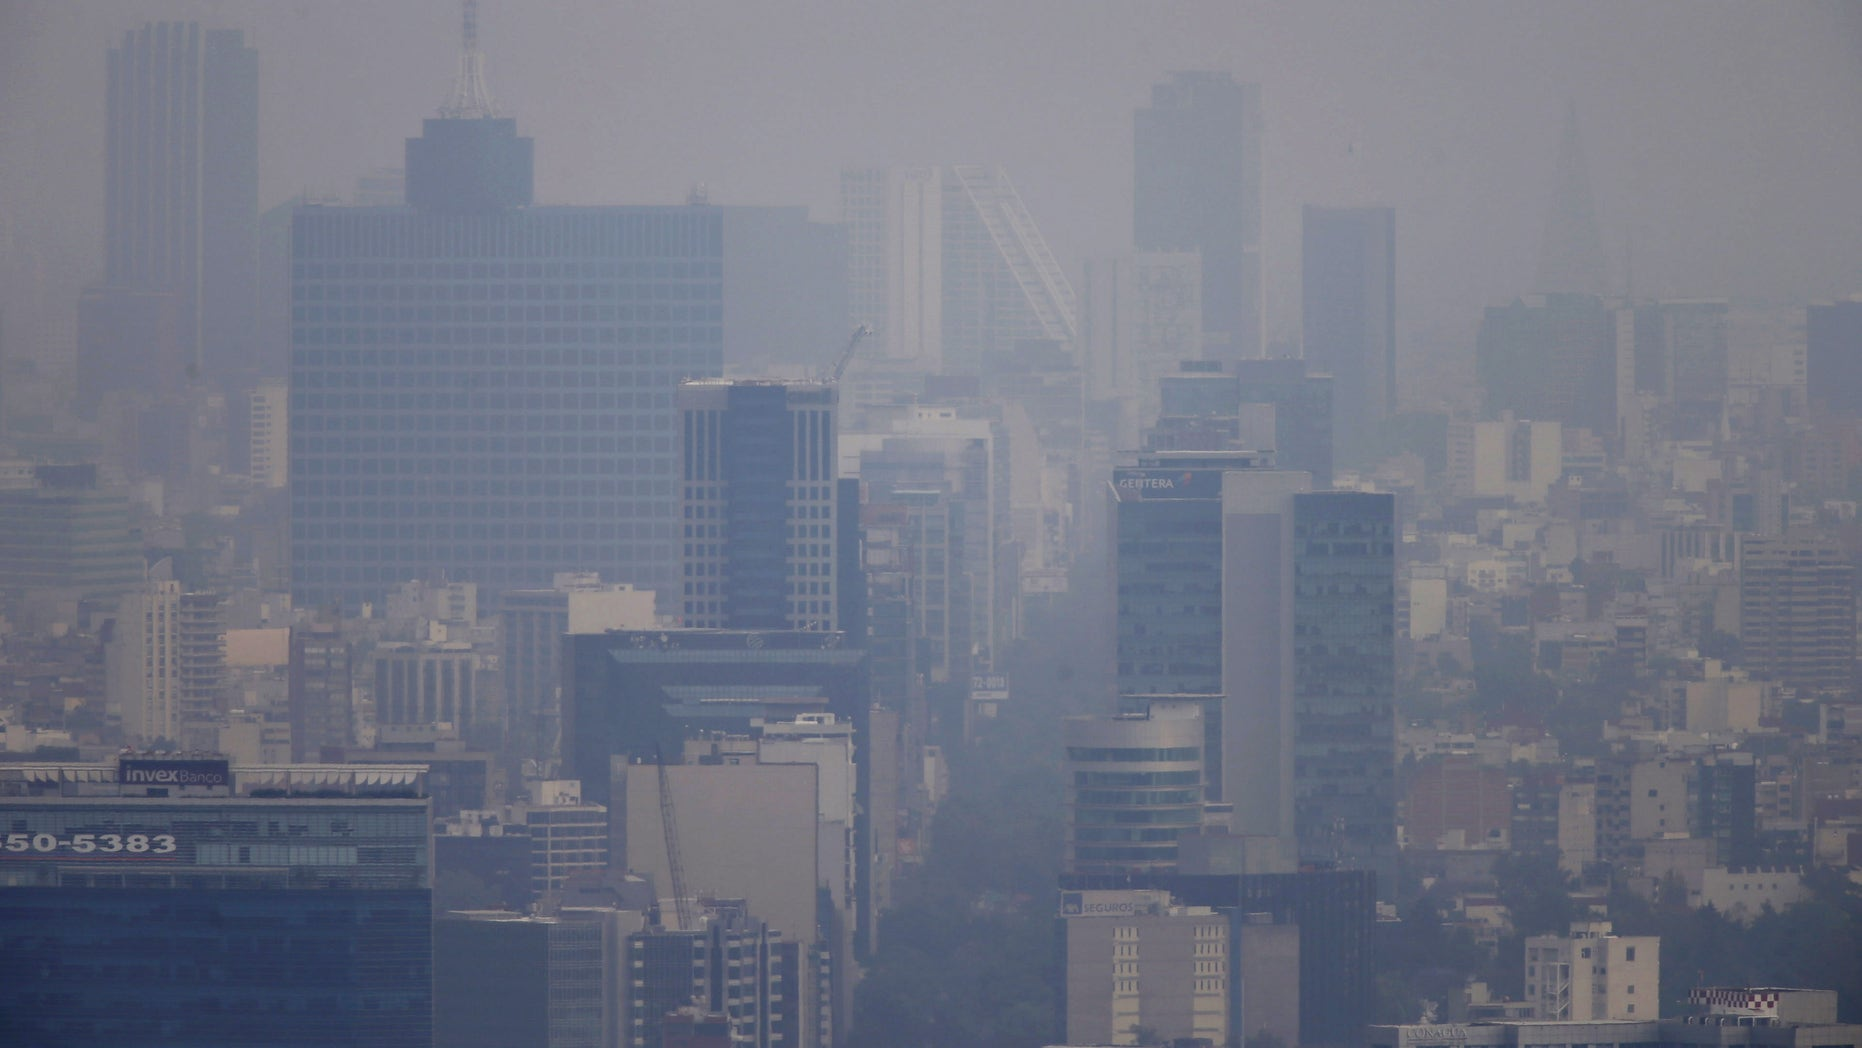 March 16, 2016: Buildings stand shrouded in smog in Mexico City.